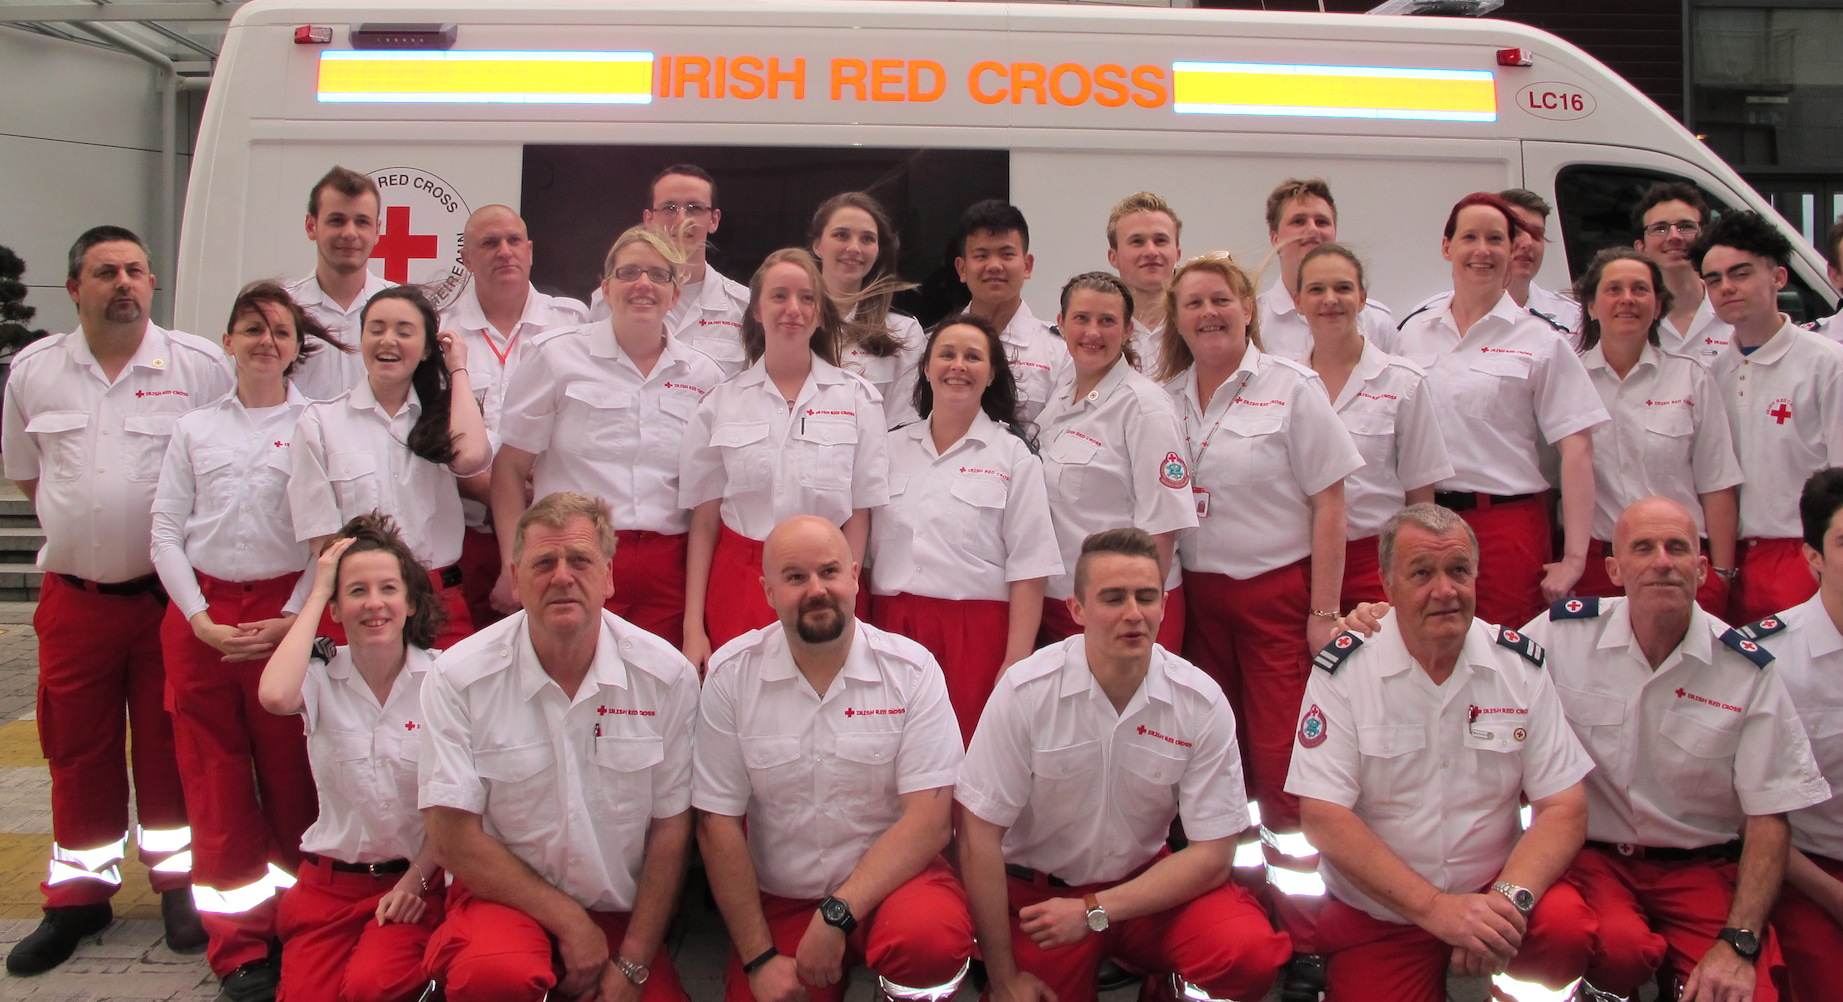 Irish Red Cross Awards 2016